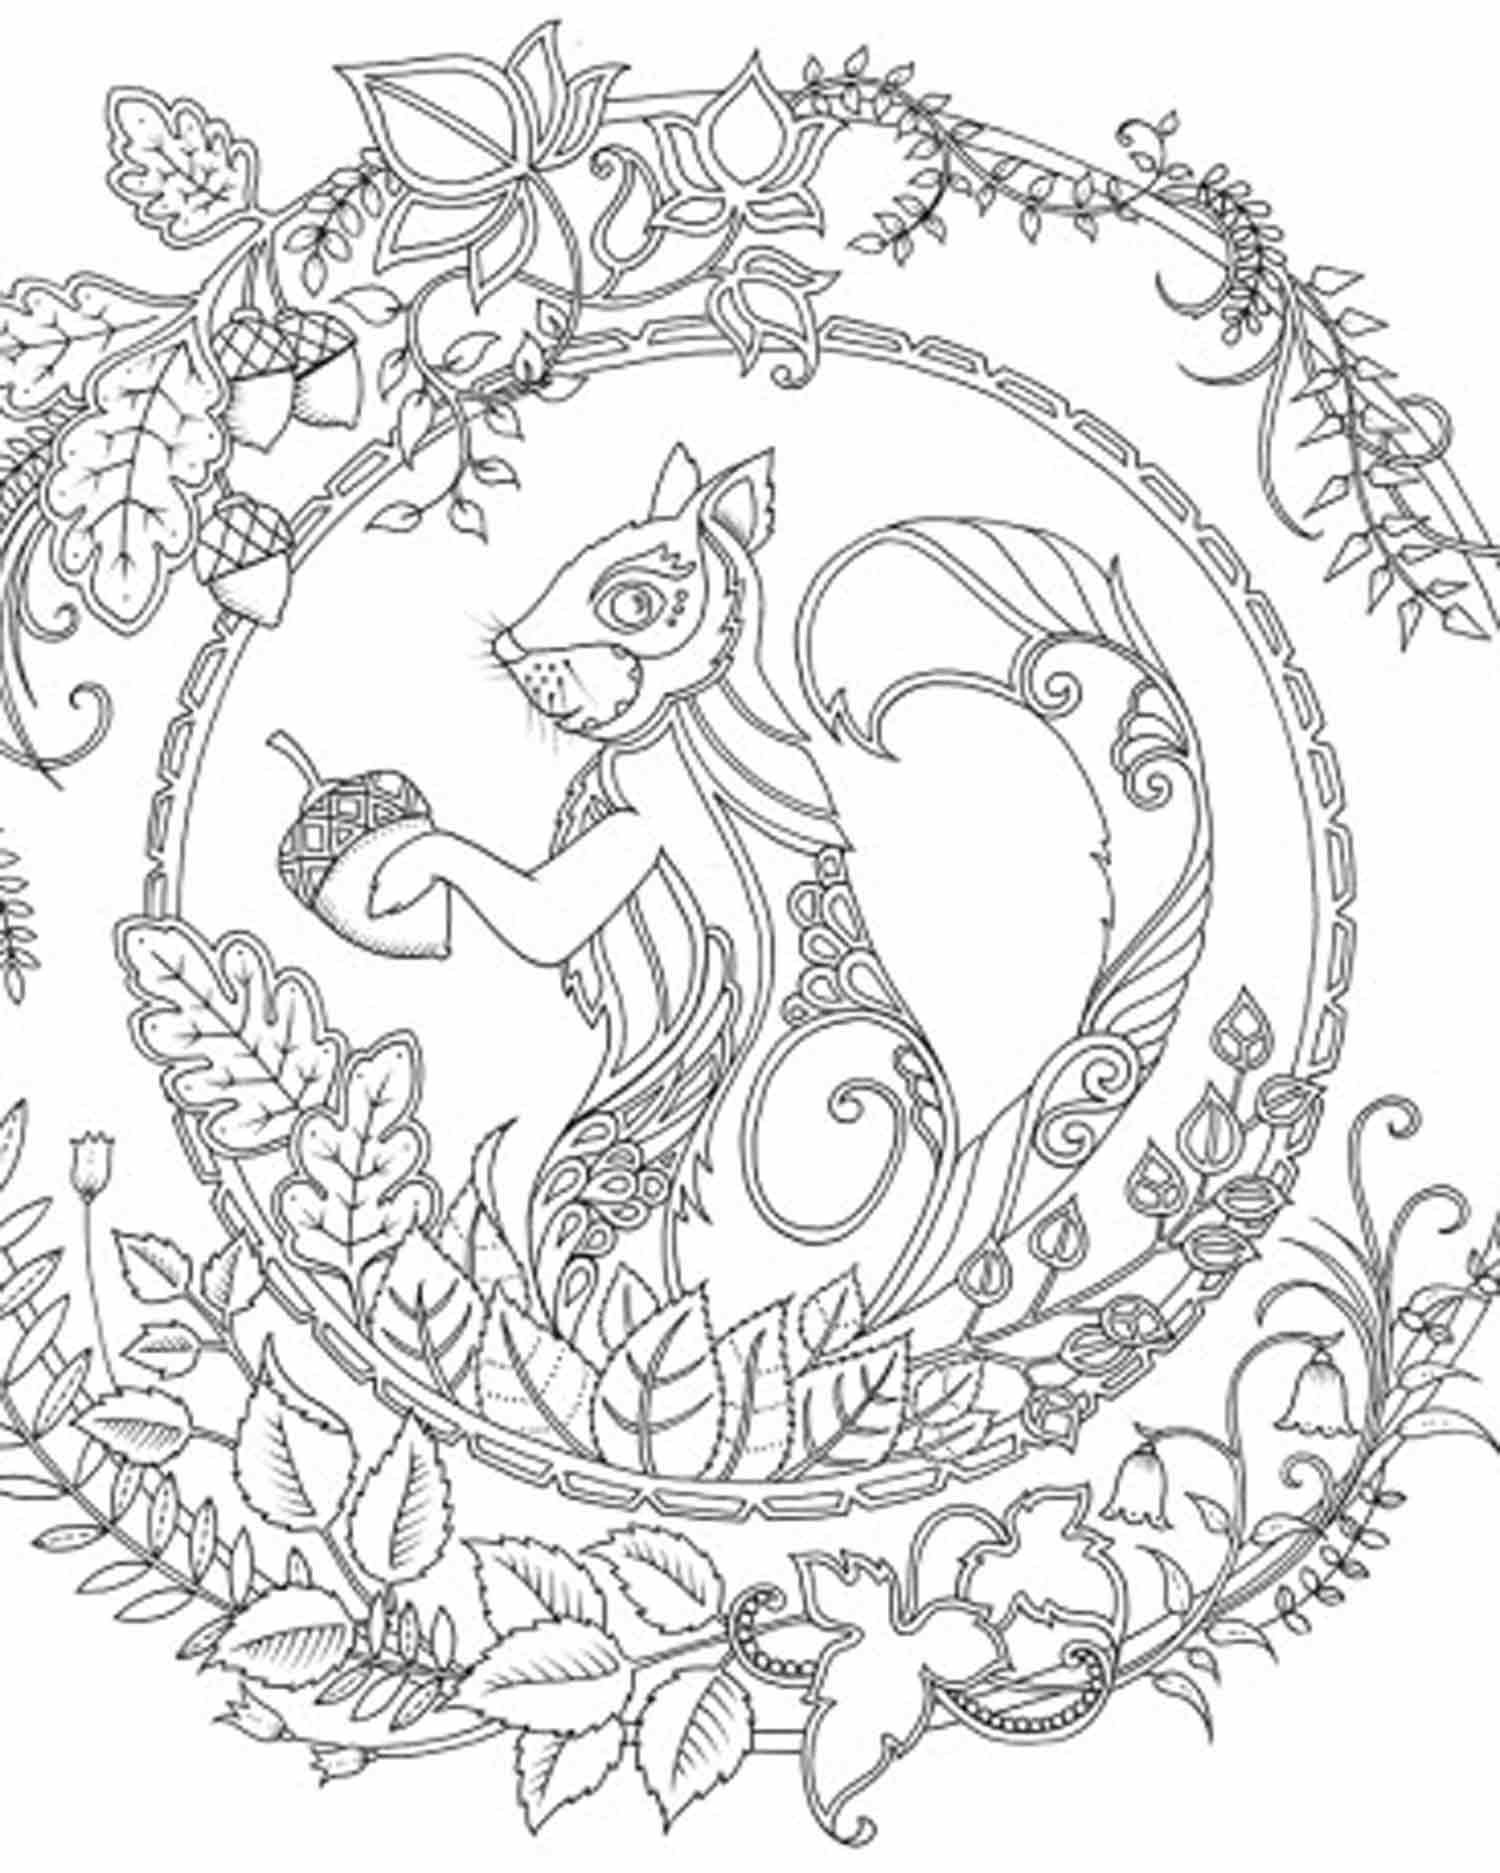 Enchanted Forest Coloring Pages - Bing Images | coloring | Pinterest ...